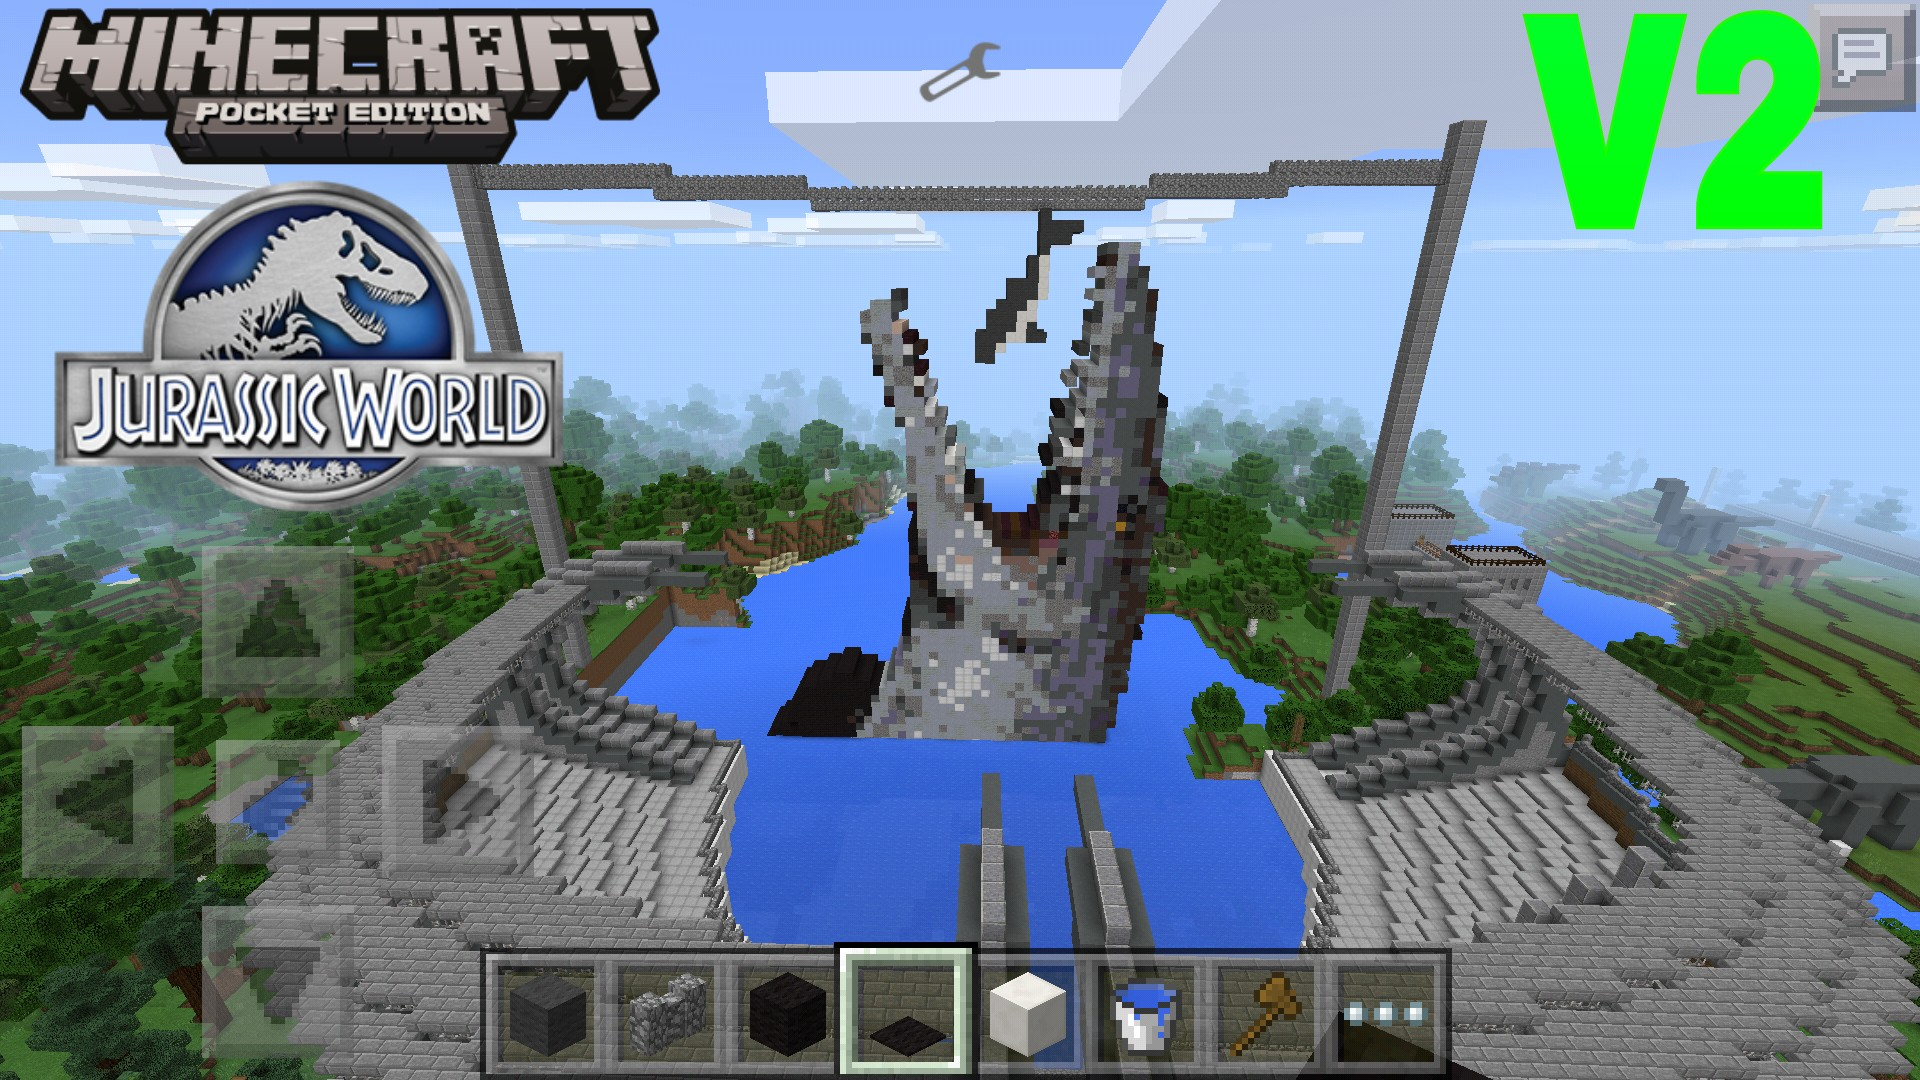 Jurassic world v2 mcpe discussion minecraft pocket edition picsart1436565859832 gumiabroncs Images